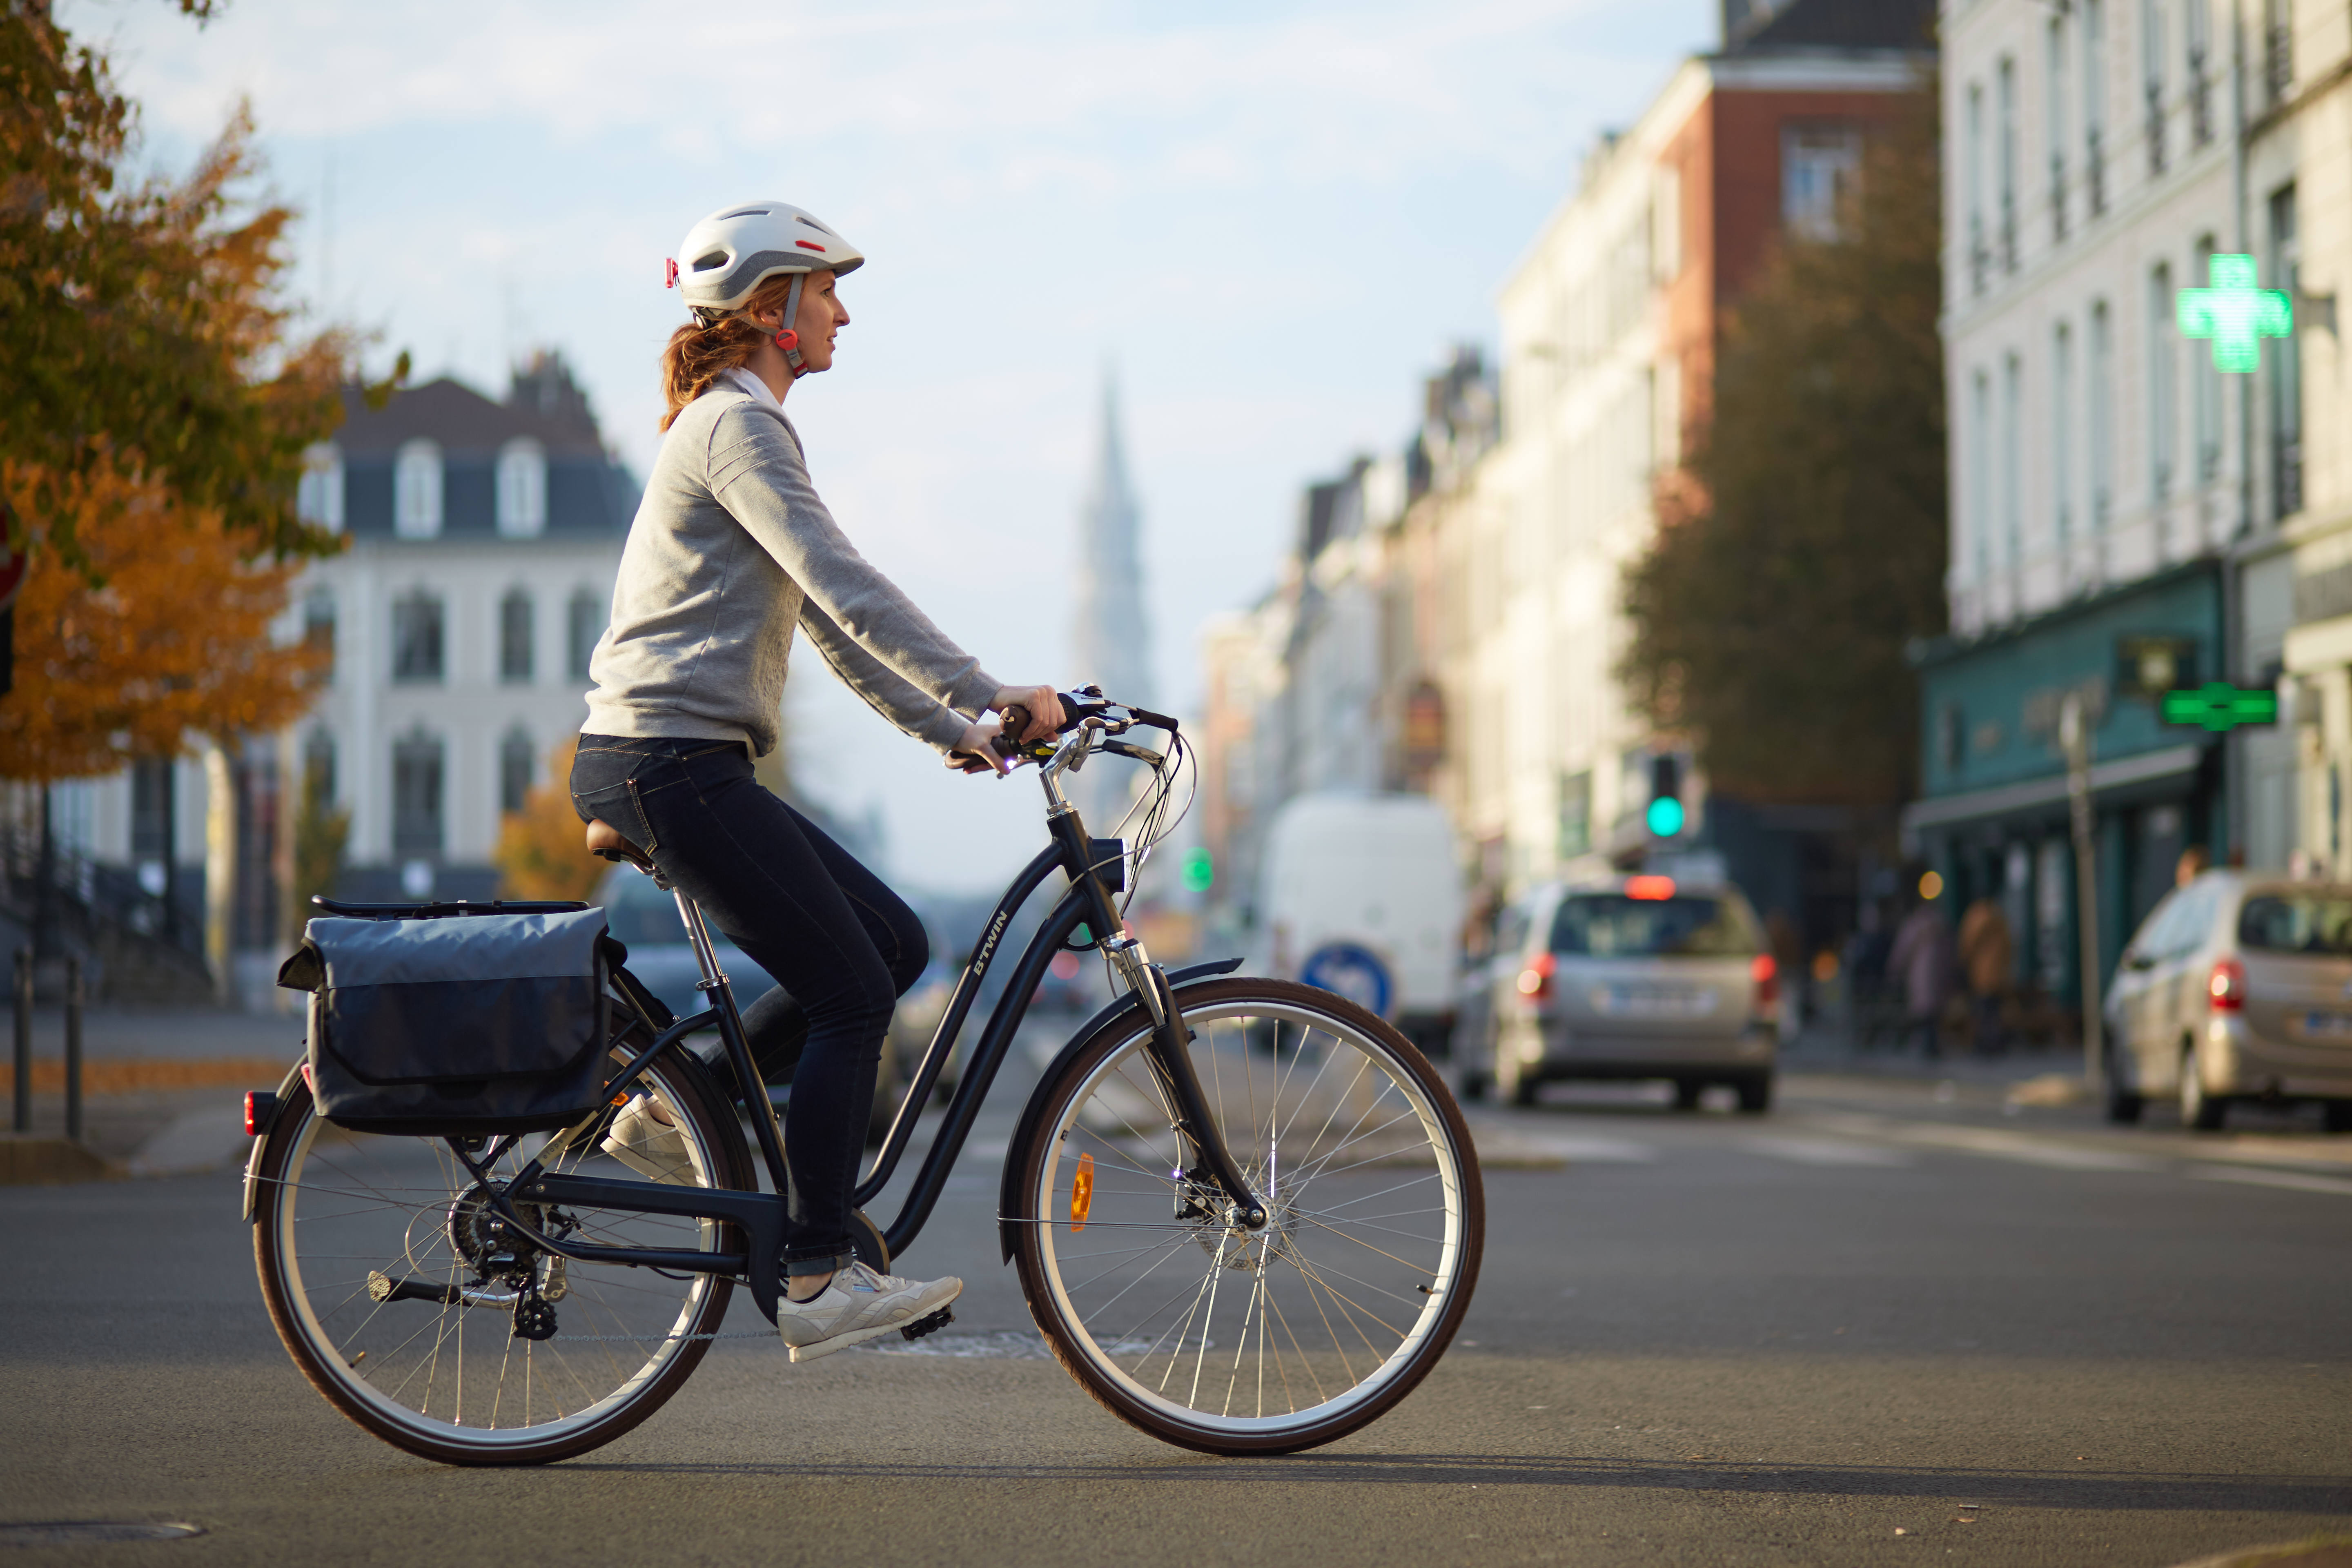 city-bike-helmet-500-white5B83268335Dtci_scene_006